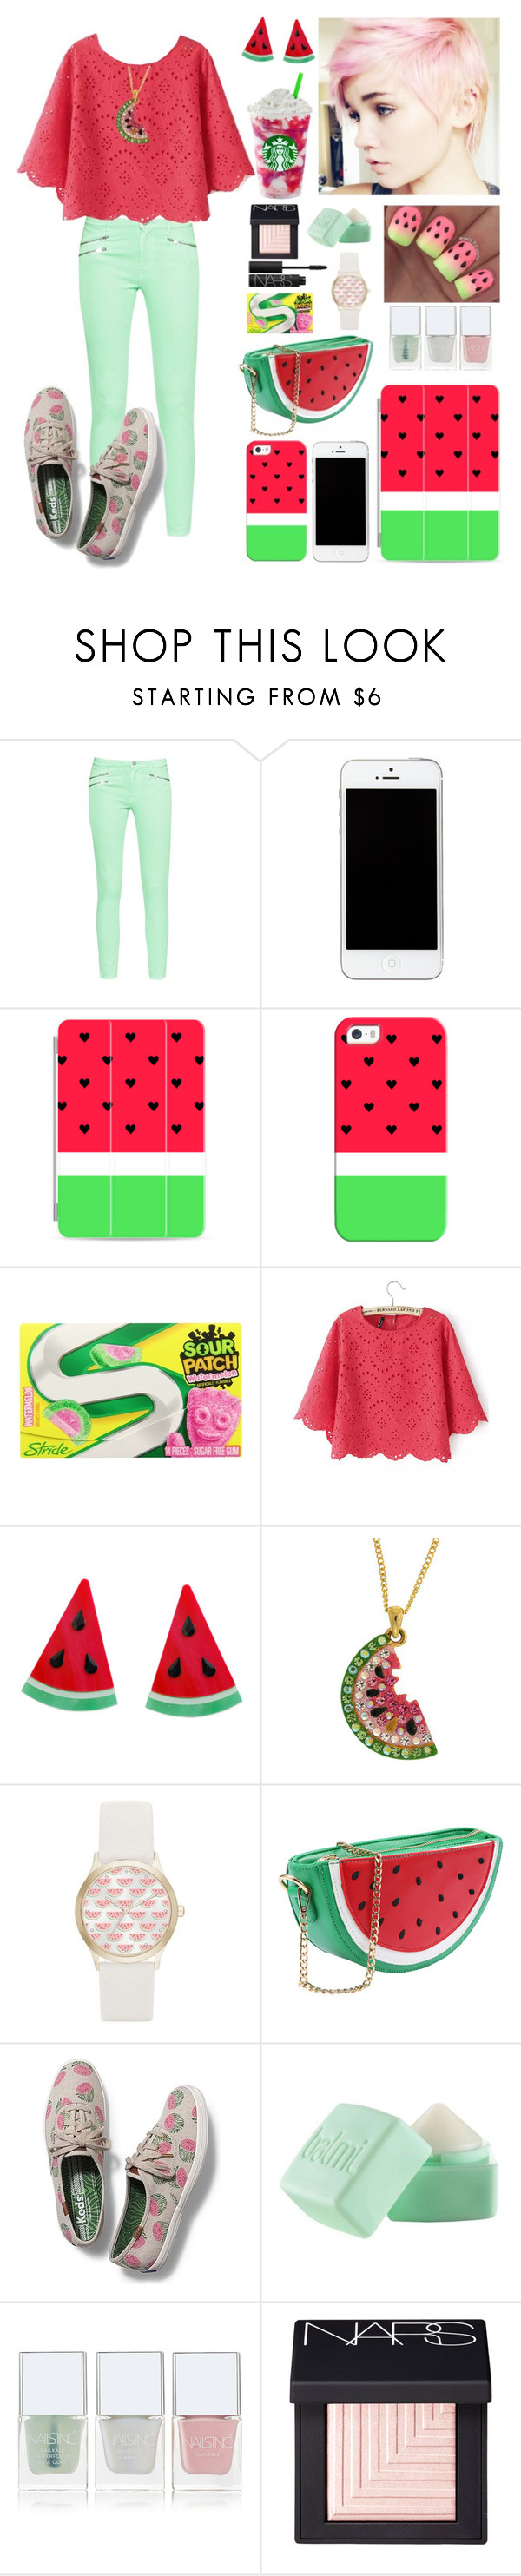 """watermelon"" by howlingwolf0-0 ❤ liked on Polyvore featuring French Connection, Casetify, Jessica Carlyle, Keds, Balmi, Nails Inc. and NARS Cosmetics"